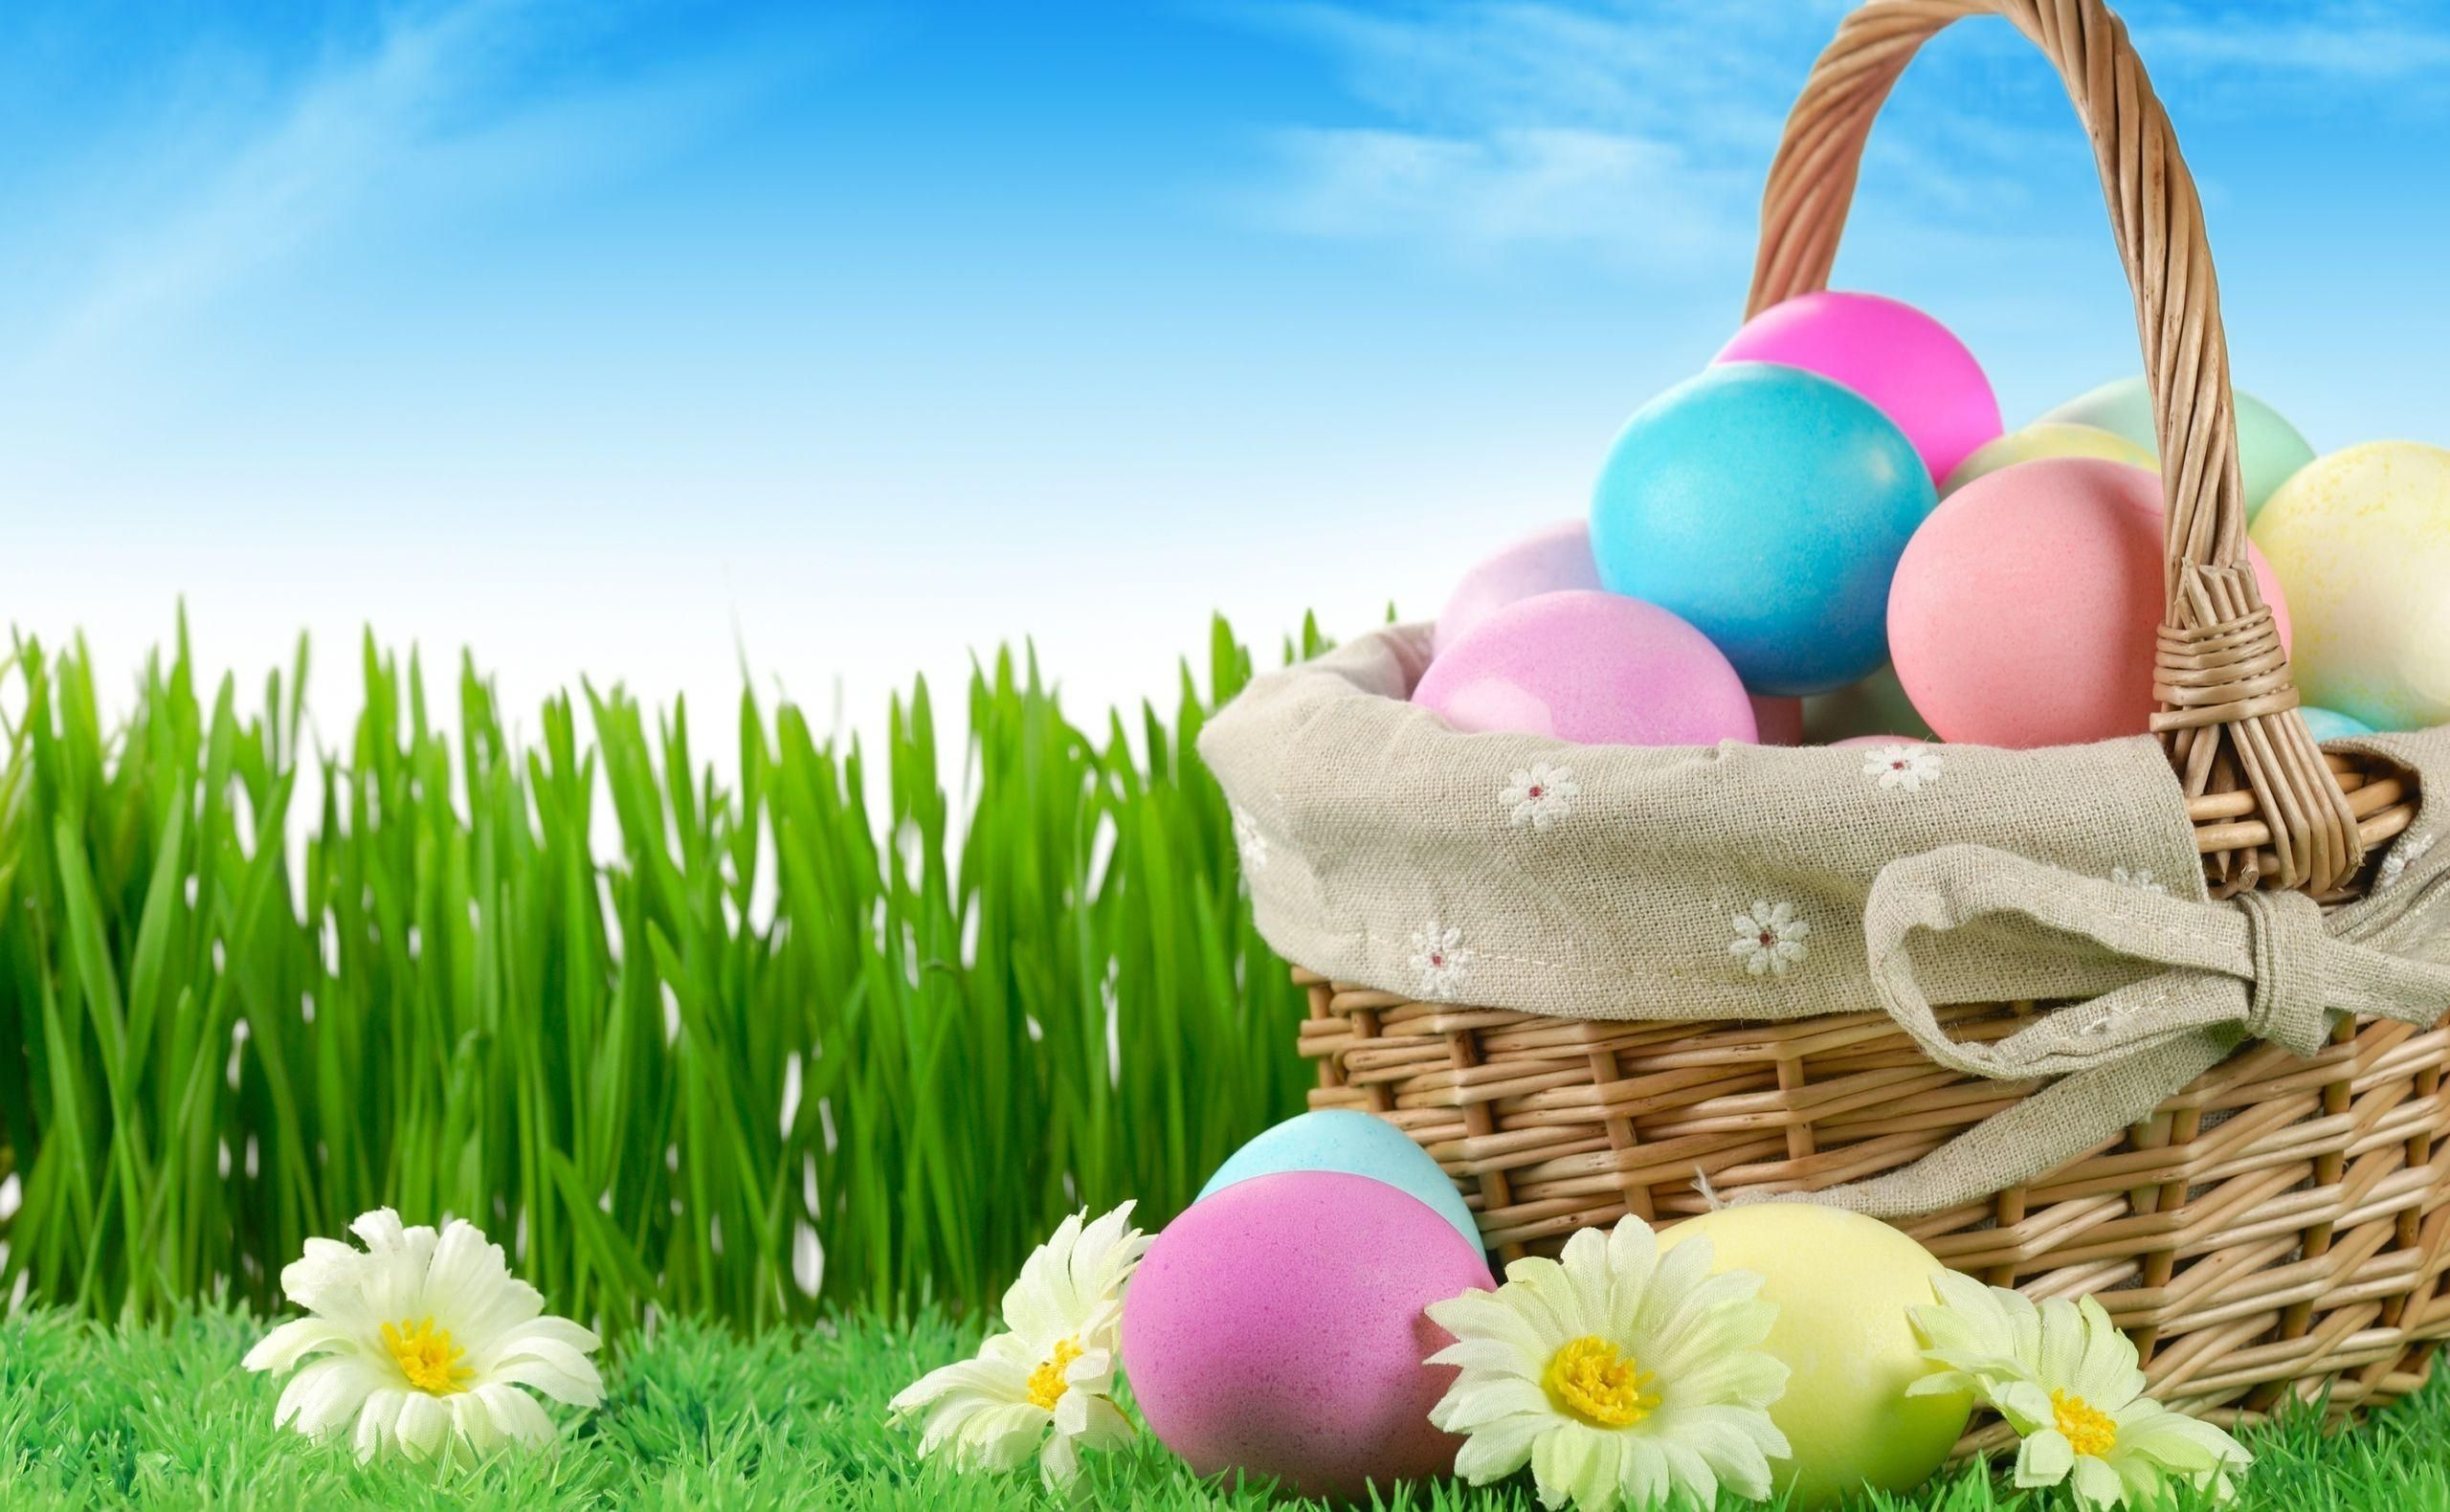 easter wallpapers hd download free colletion | hd wallpapers